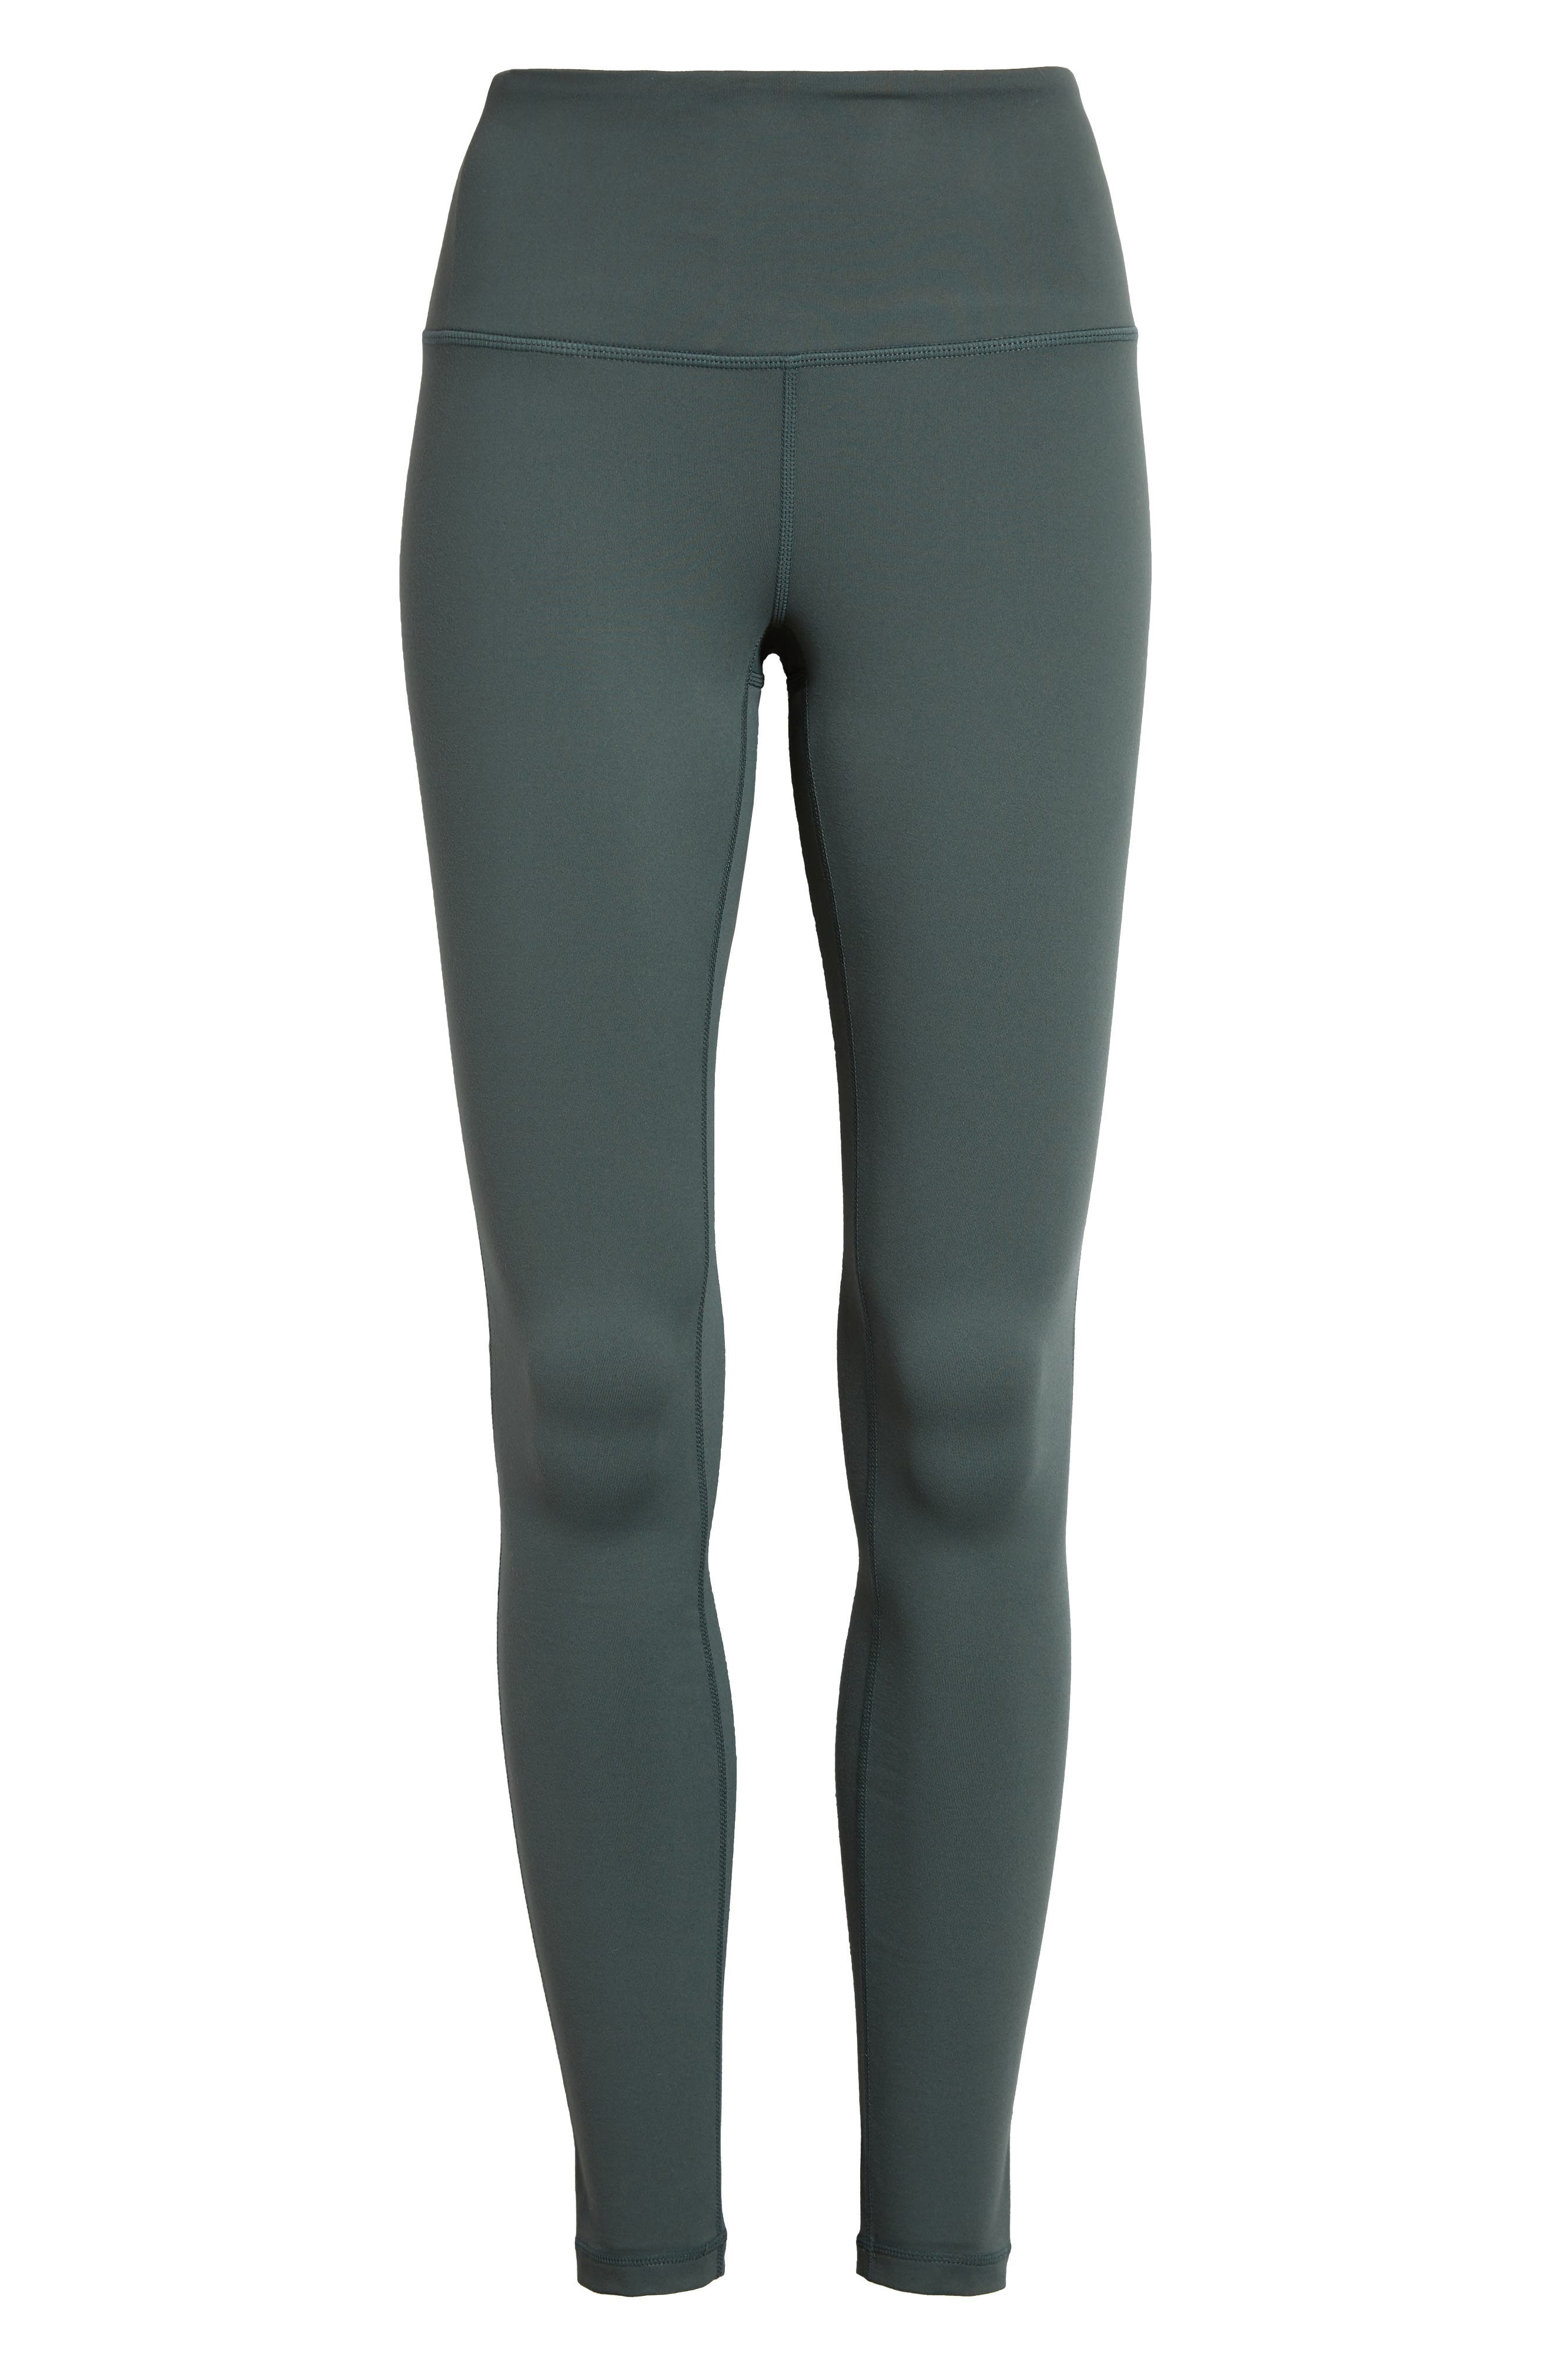 Built from moisture-wicking fabric and fitted with a no-slip waistband, these stretchy, figure-sculpting leggings keep you cool as your workout warms up. Style Name: Zella Live In High Waist Leggings. Style Number: 5137575. Available in stores.